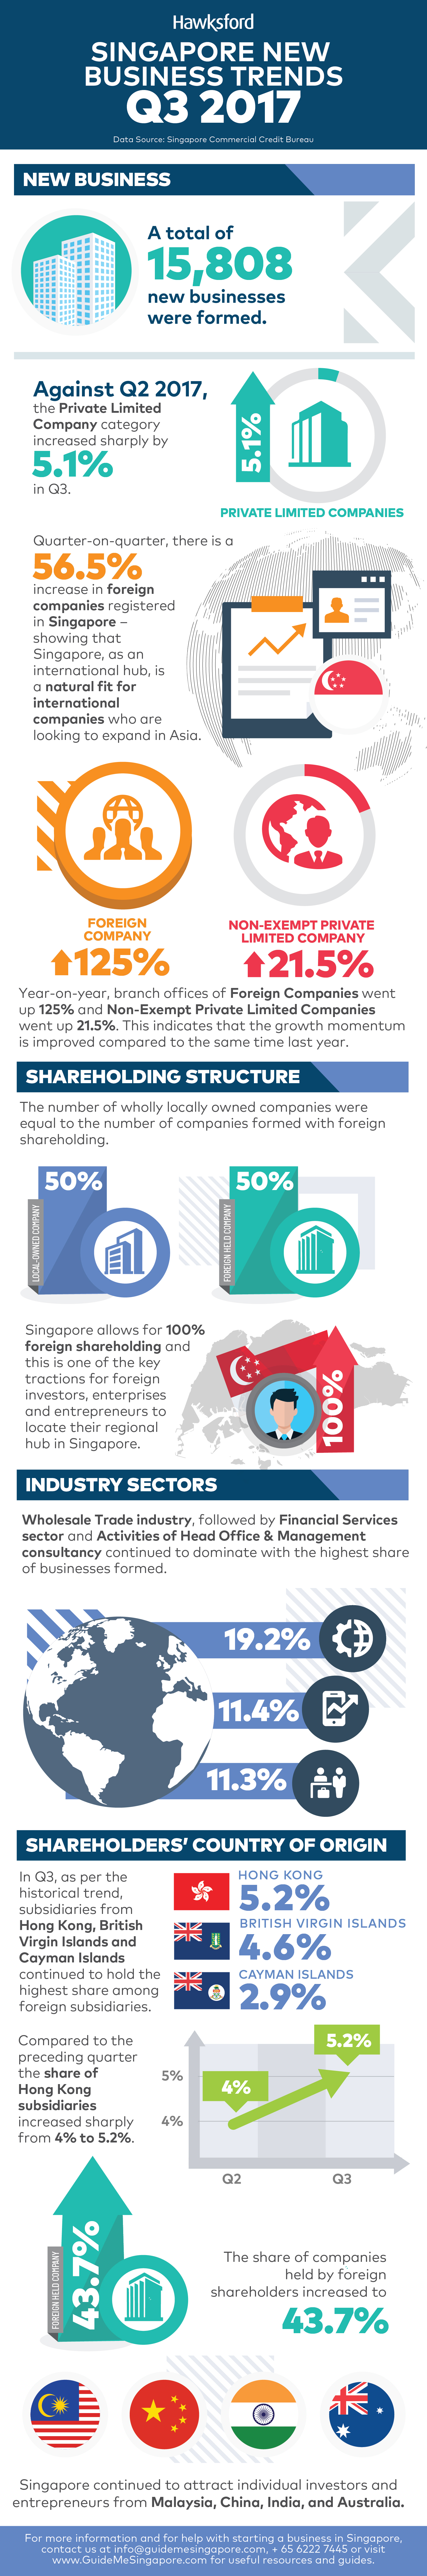 Hawksford Singapore New Business Trends Q3 2017 Infographics